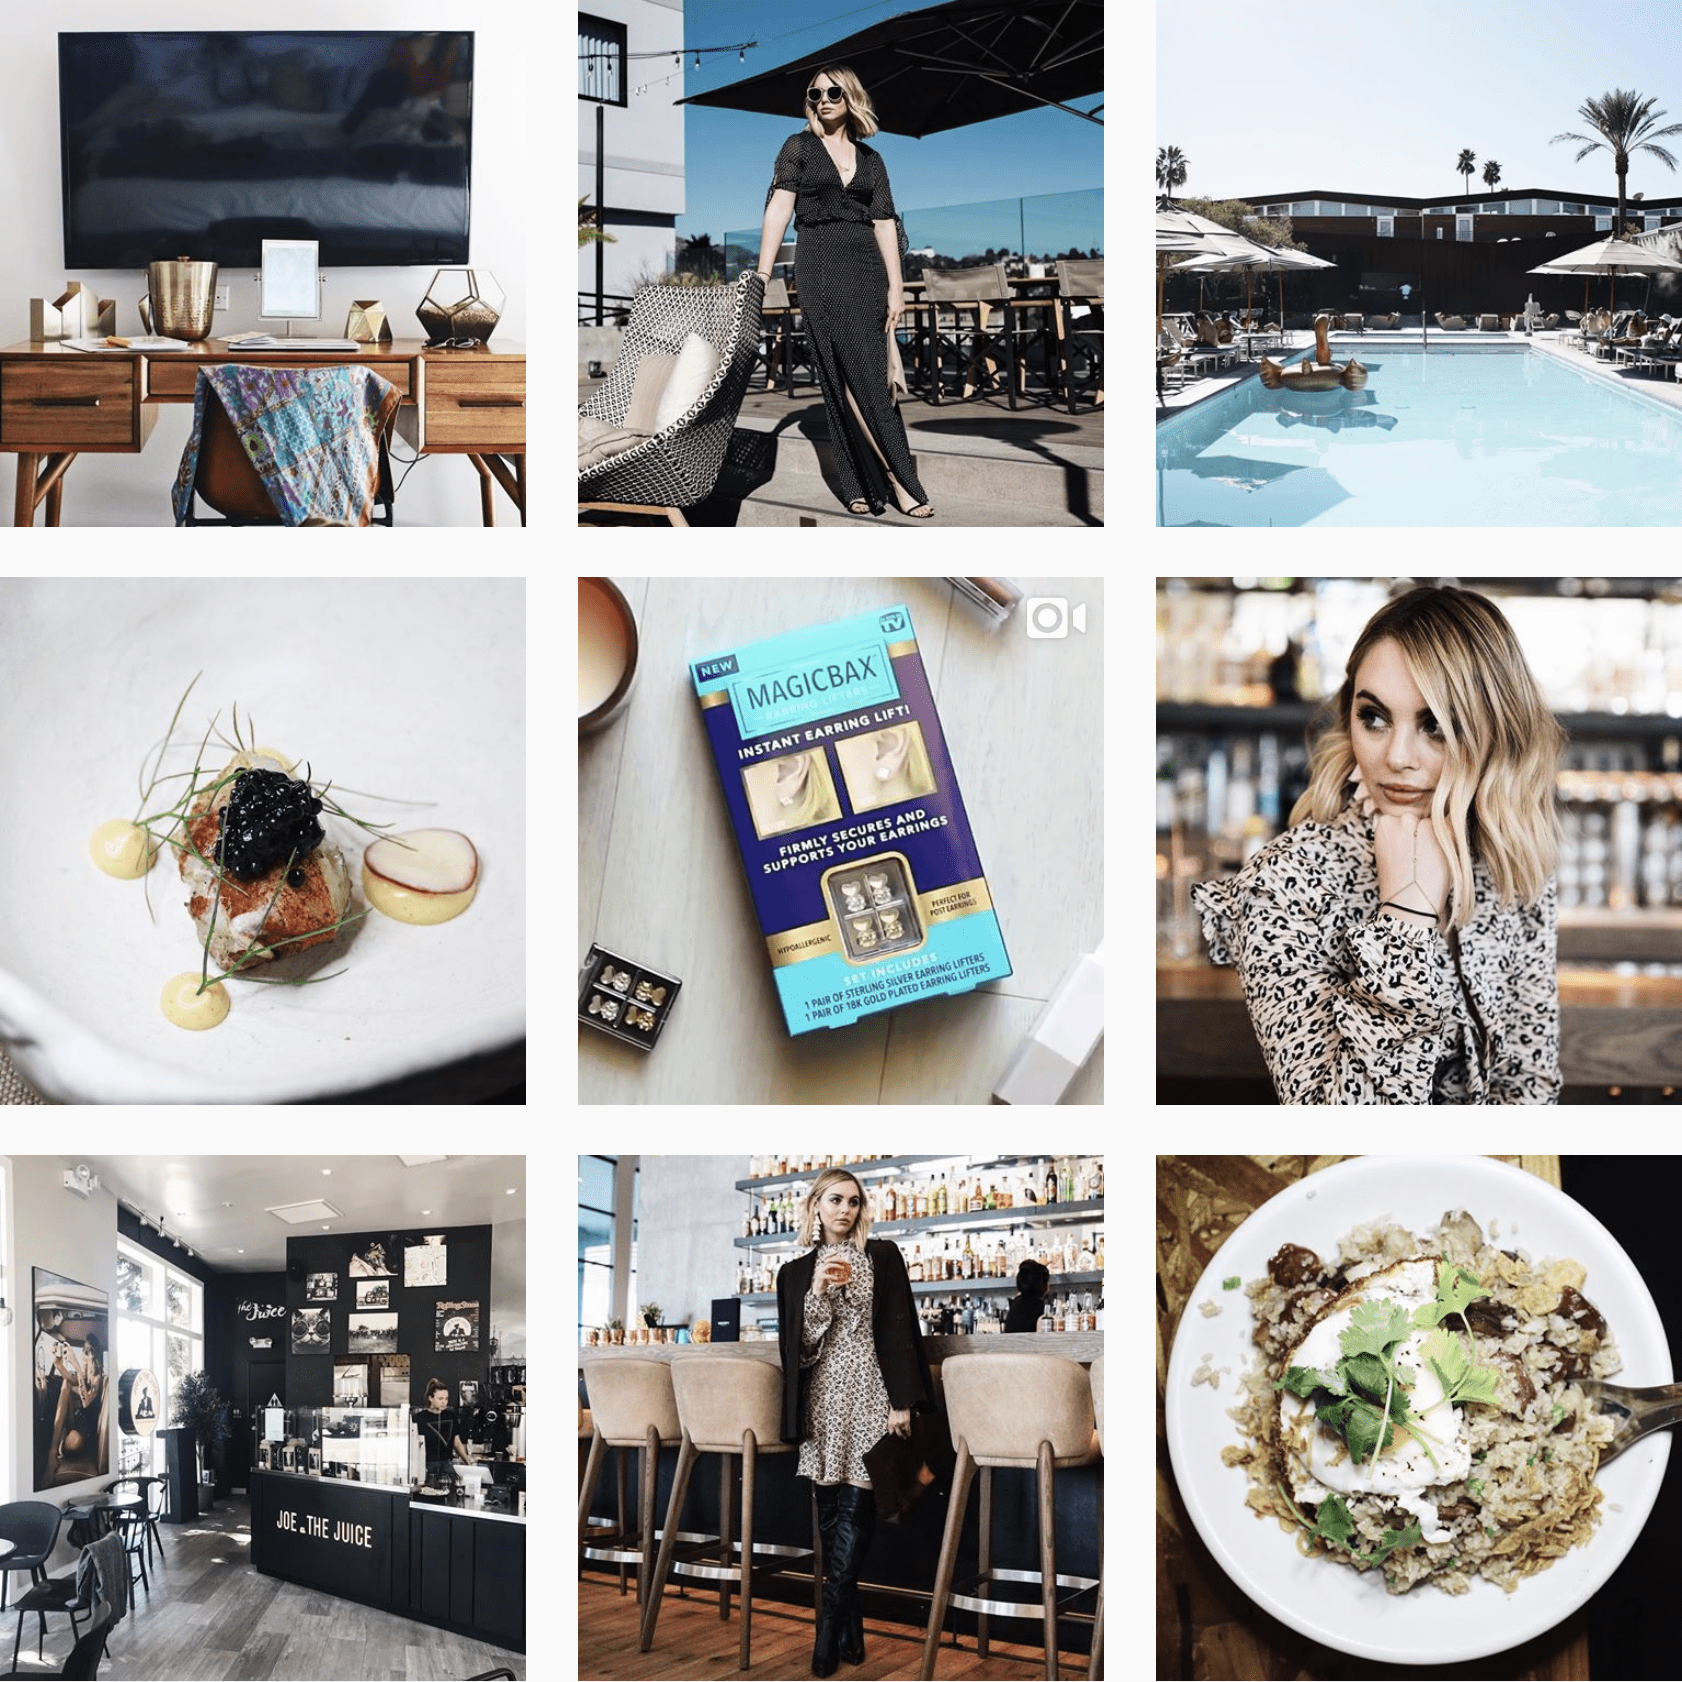 The Editorialist LA Instagram stream